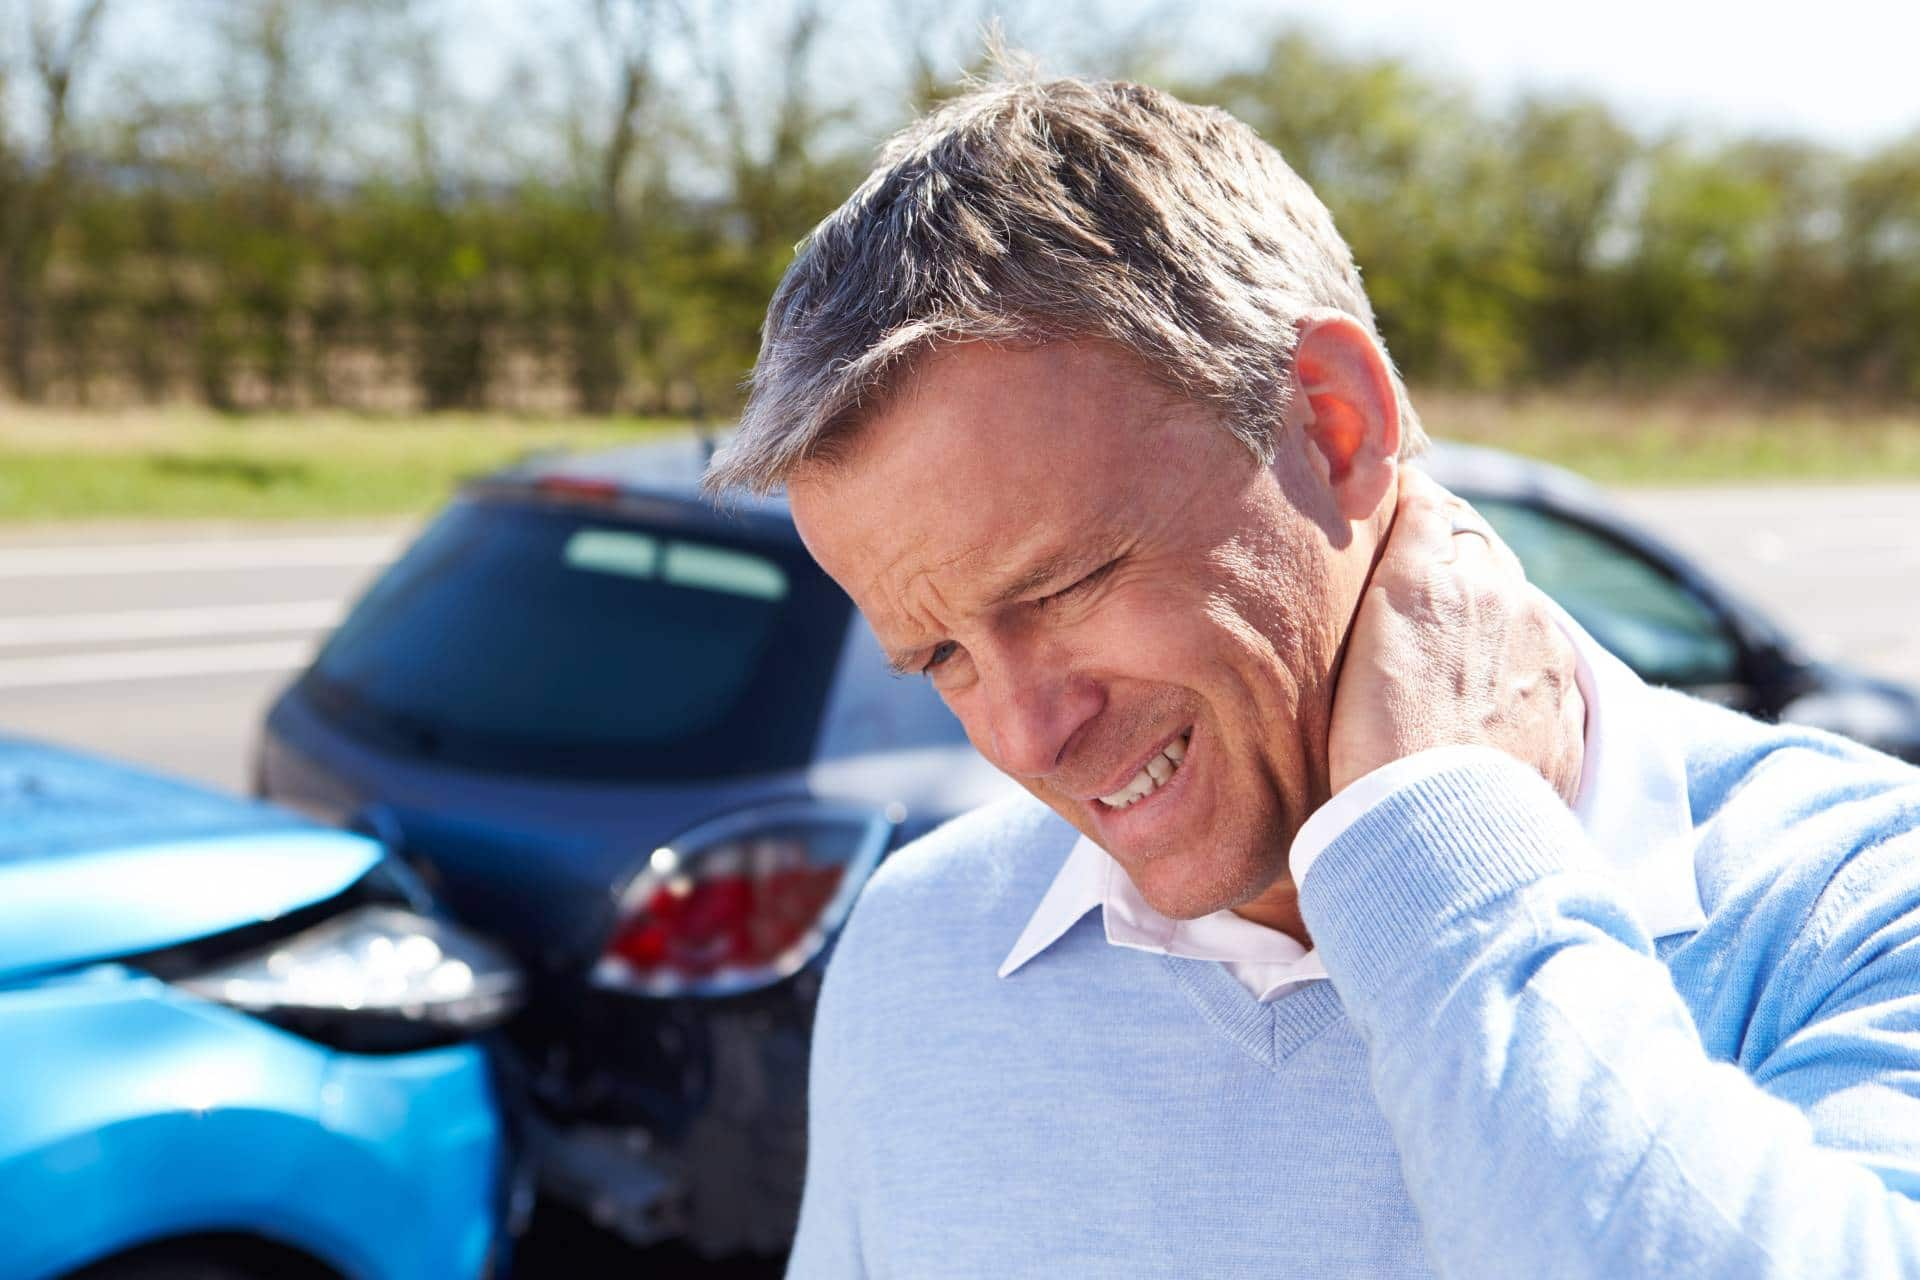 Hurt in a car accident? Schedule a free consultation with our personal injury lawyers at the Angell Law Firm in West Paces Ferry.